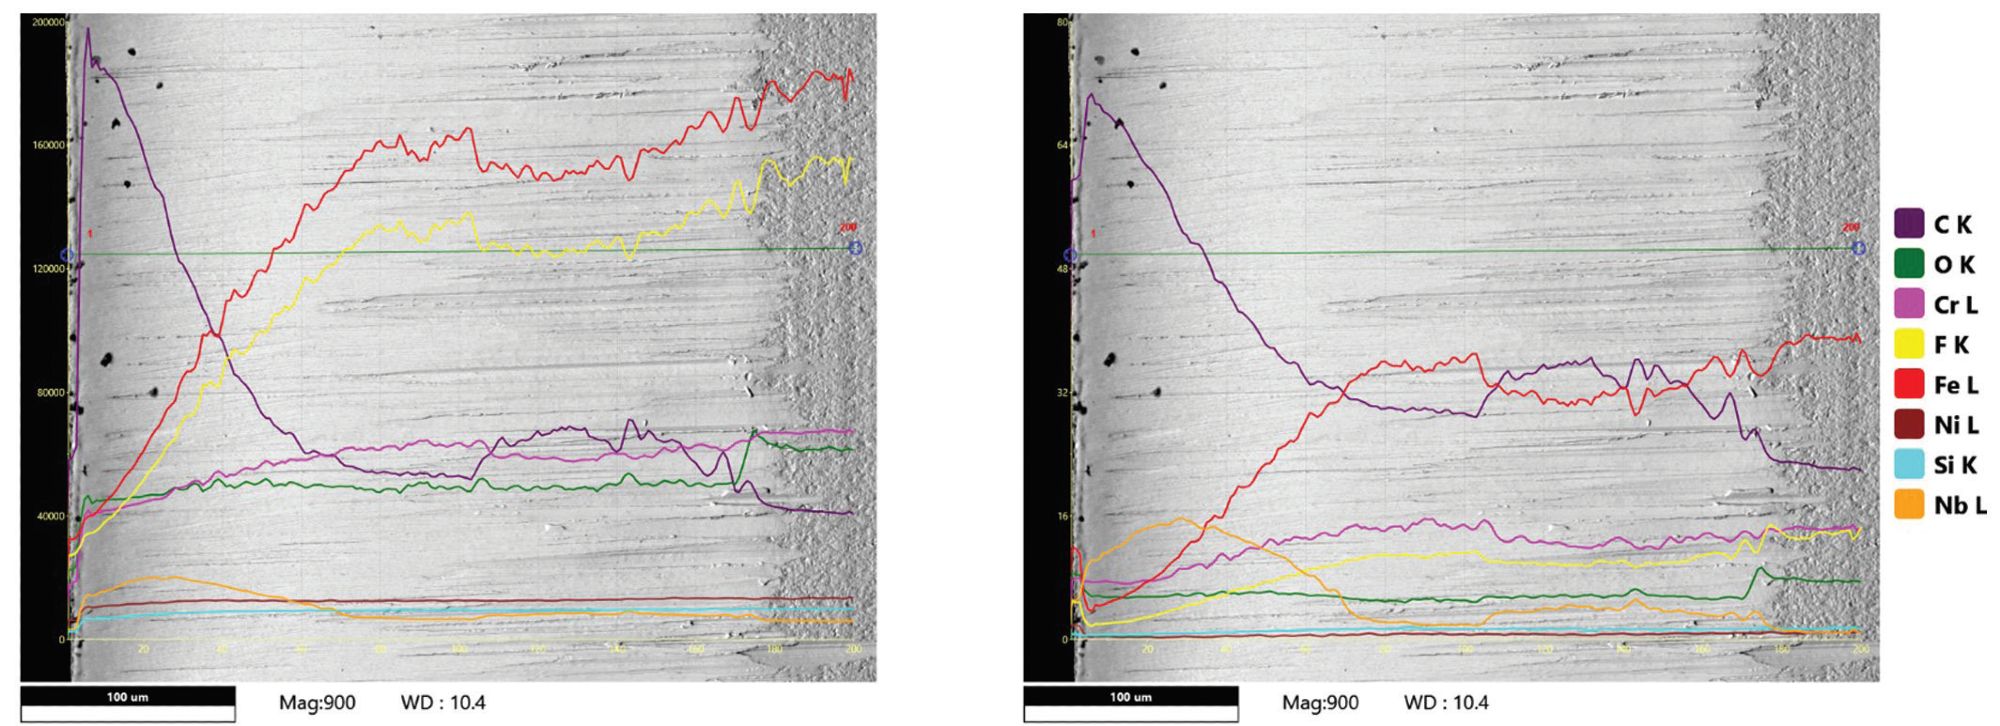 (left) ROI linescan across the cutting edge of a razor blade (The sharp edge is to the left). Y-axis tick labels = 0 – 200 K counts. 5 kV was used to scan the surface and excite F K and Nb L lines. The F K and Fe L curves look similar since their energy regions are highly overlapped. (right) Live Wt% linescan from the same line. Y-axis tick labels = 0 – 80 Wt%. The live display shows the quantitative numbers directly as an overlay on the image in real-time. The full quantification routine has resolved the artifact of the similar-looking F K and Fe L curves.